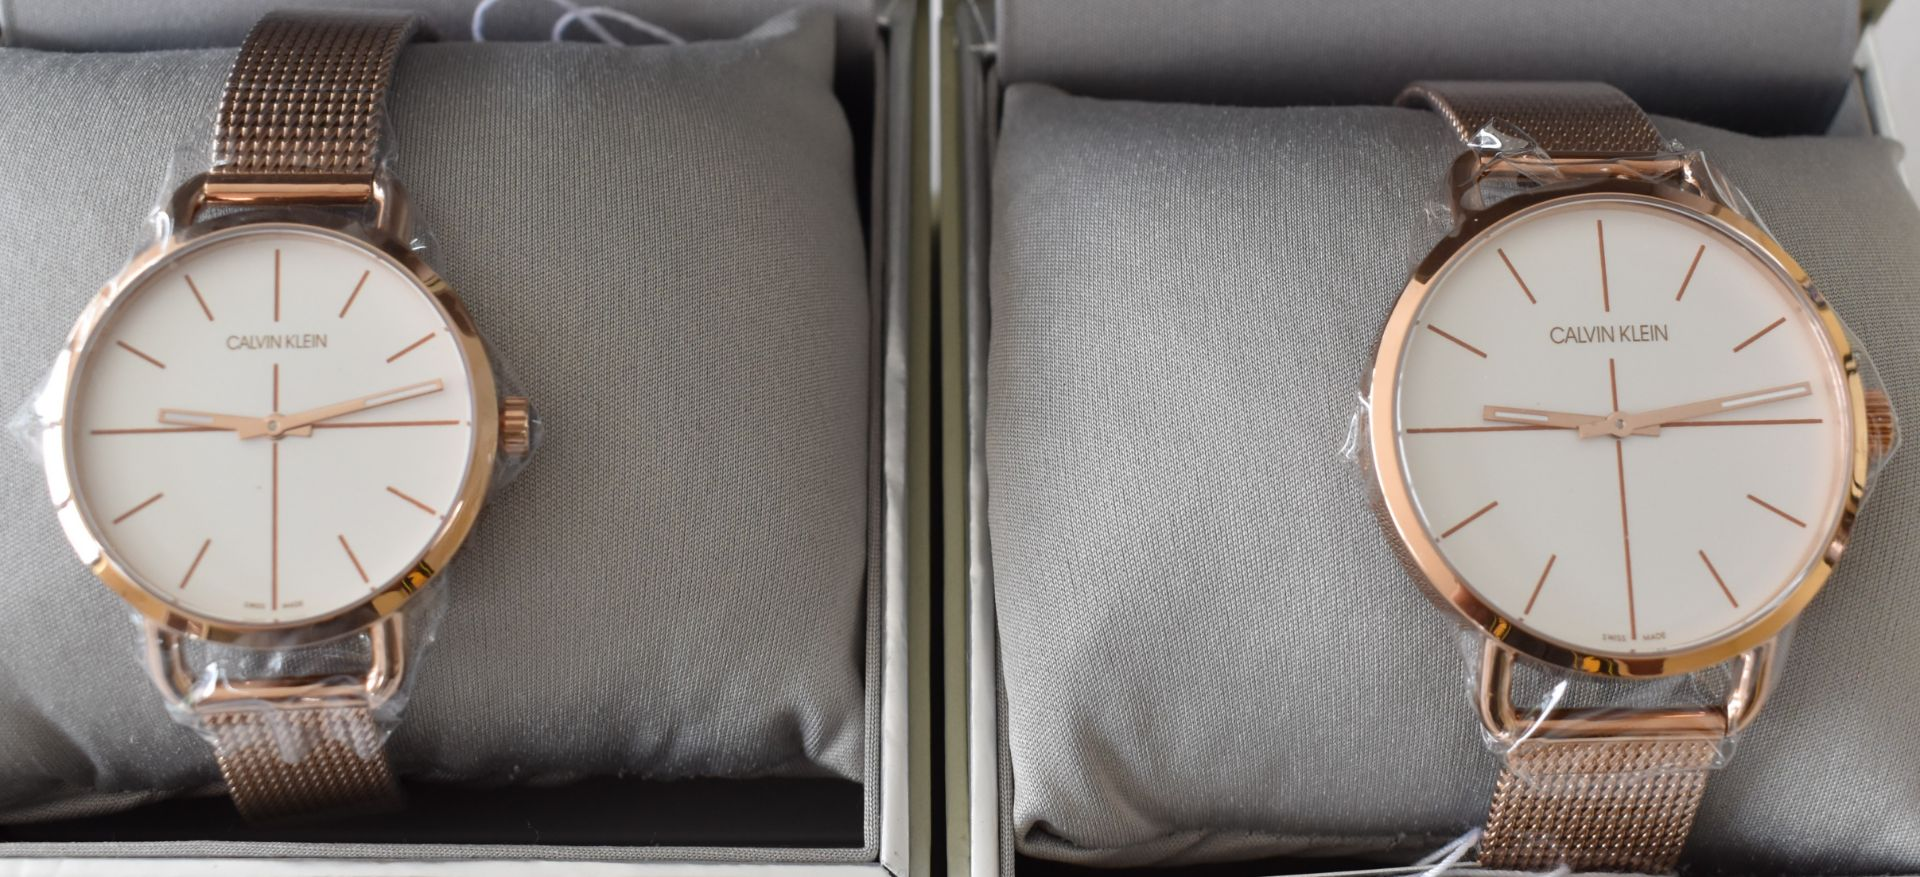 Calvin Klein His/Her K7B21626/K7B23626 Watches - Image 2 of 2